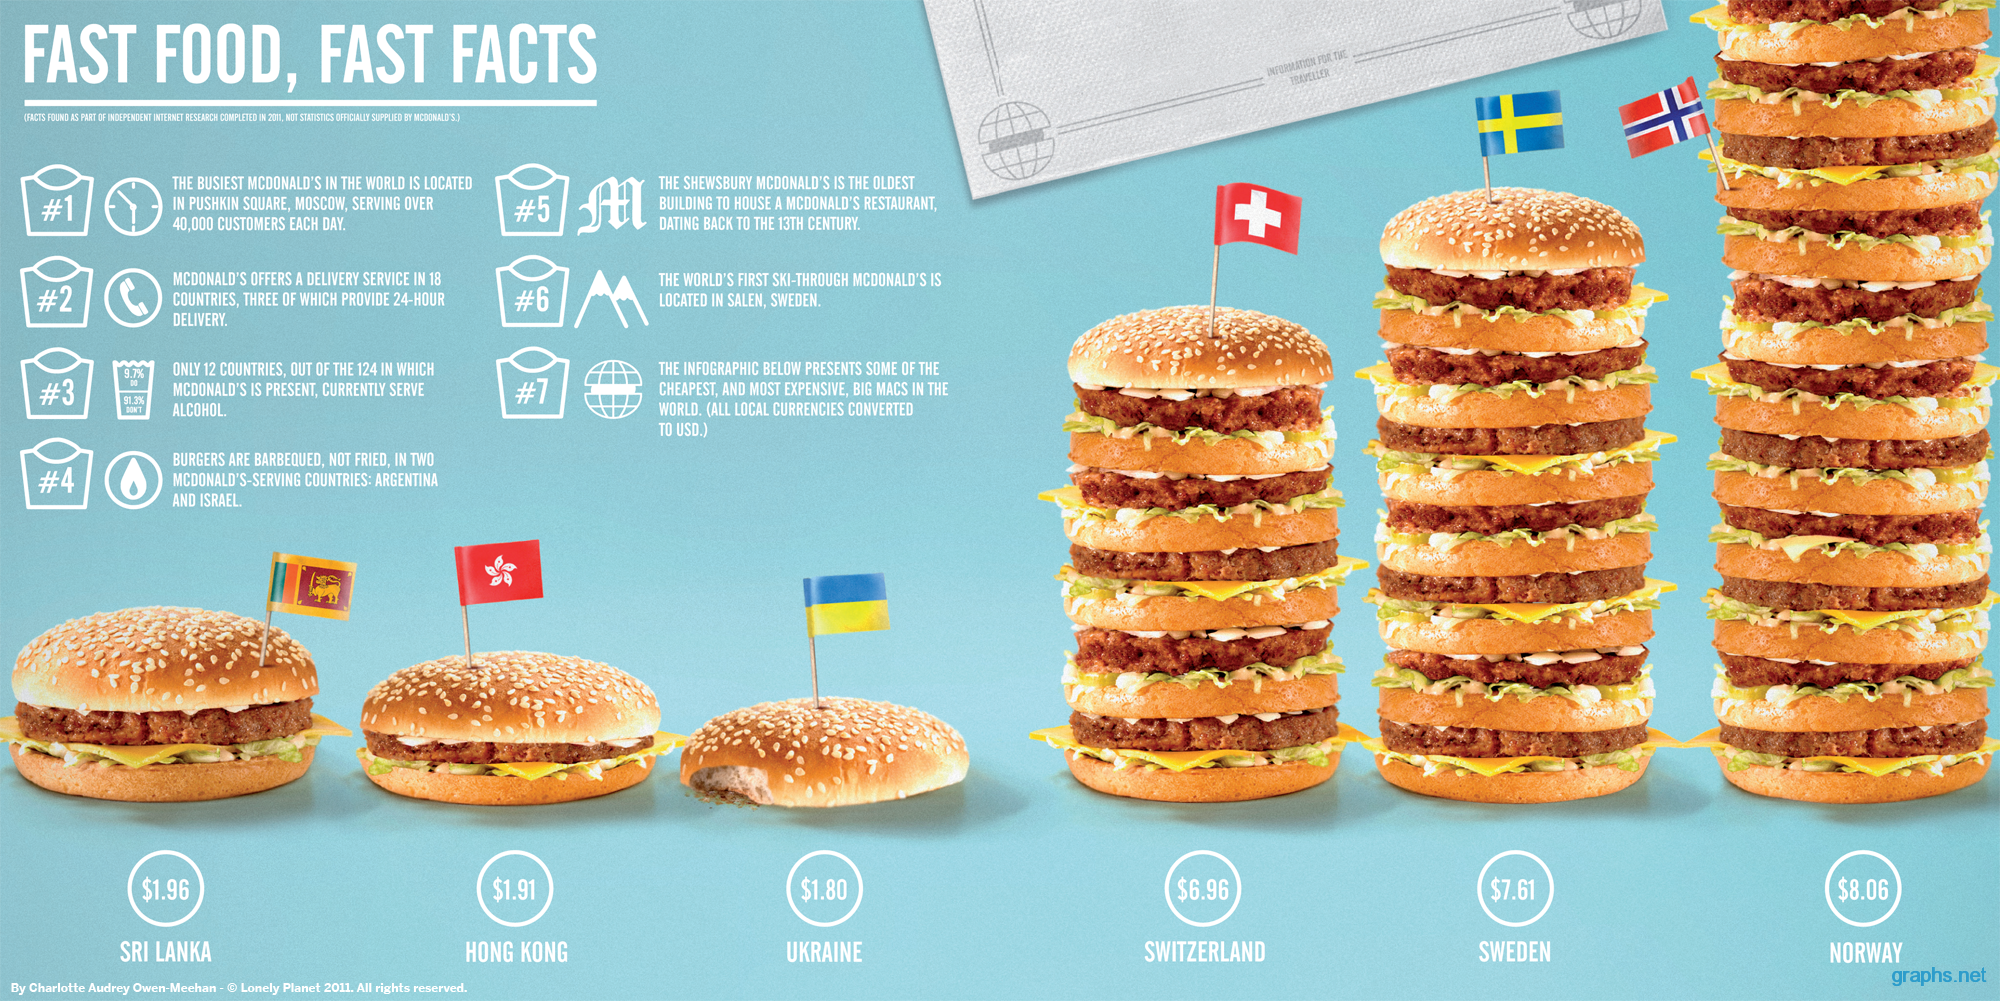 Fast Food Fast Facts